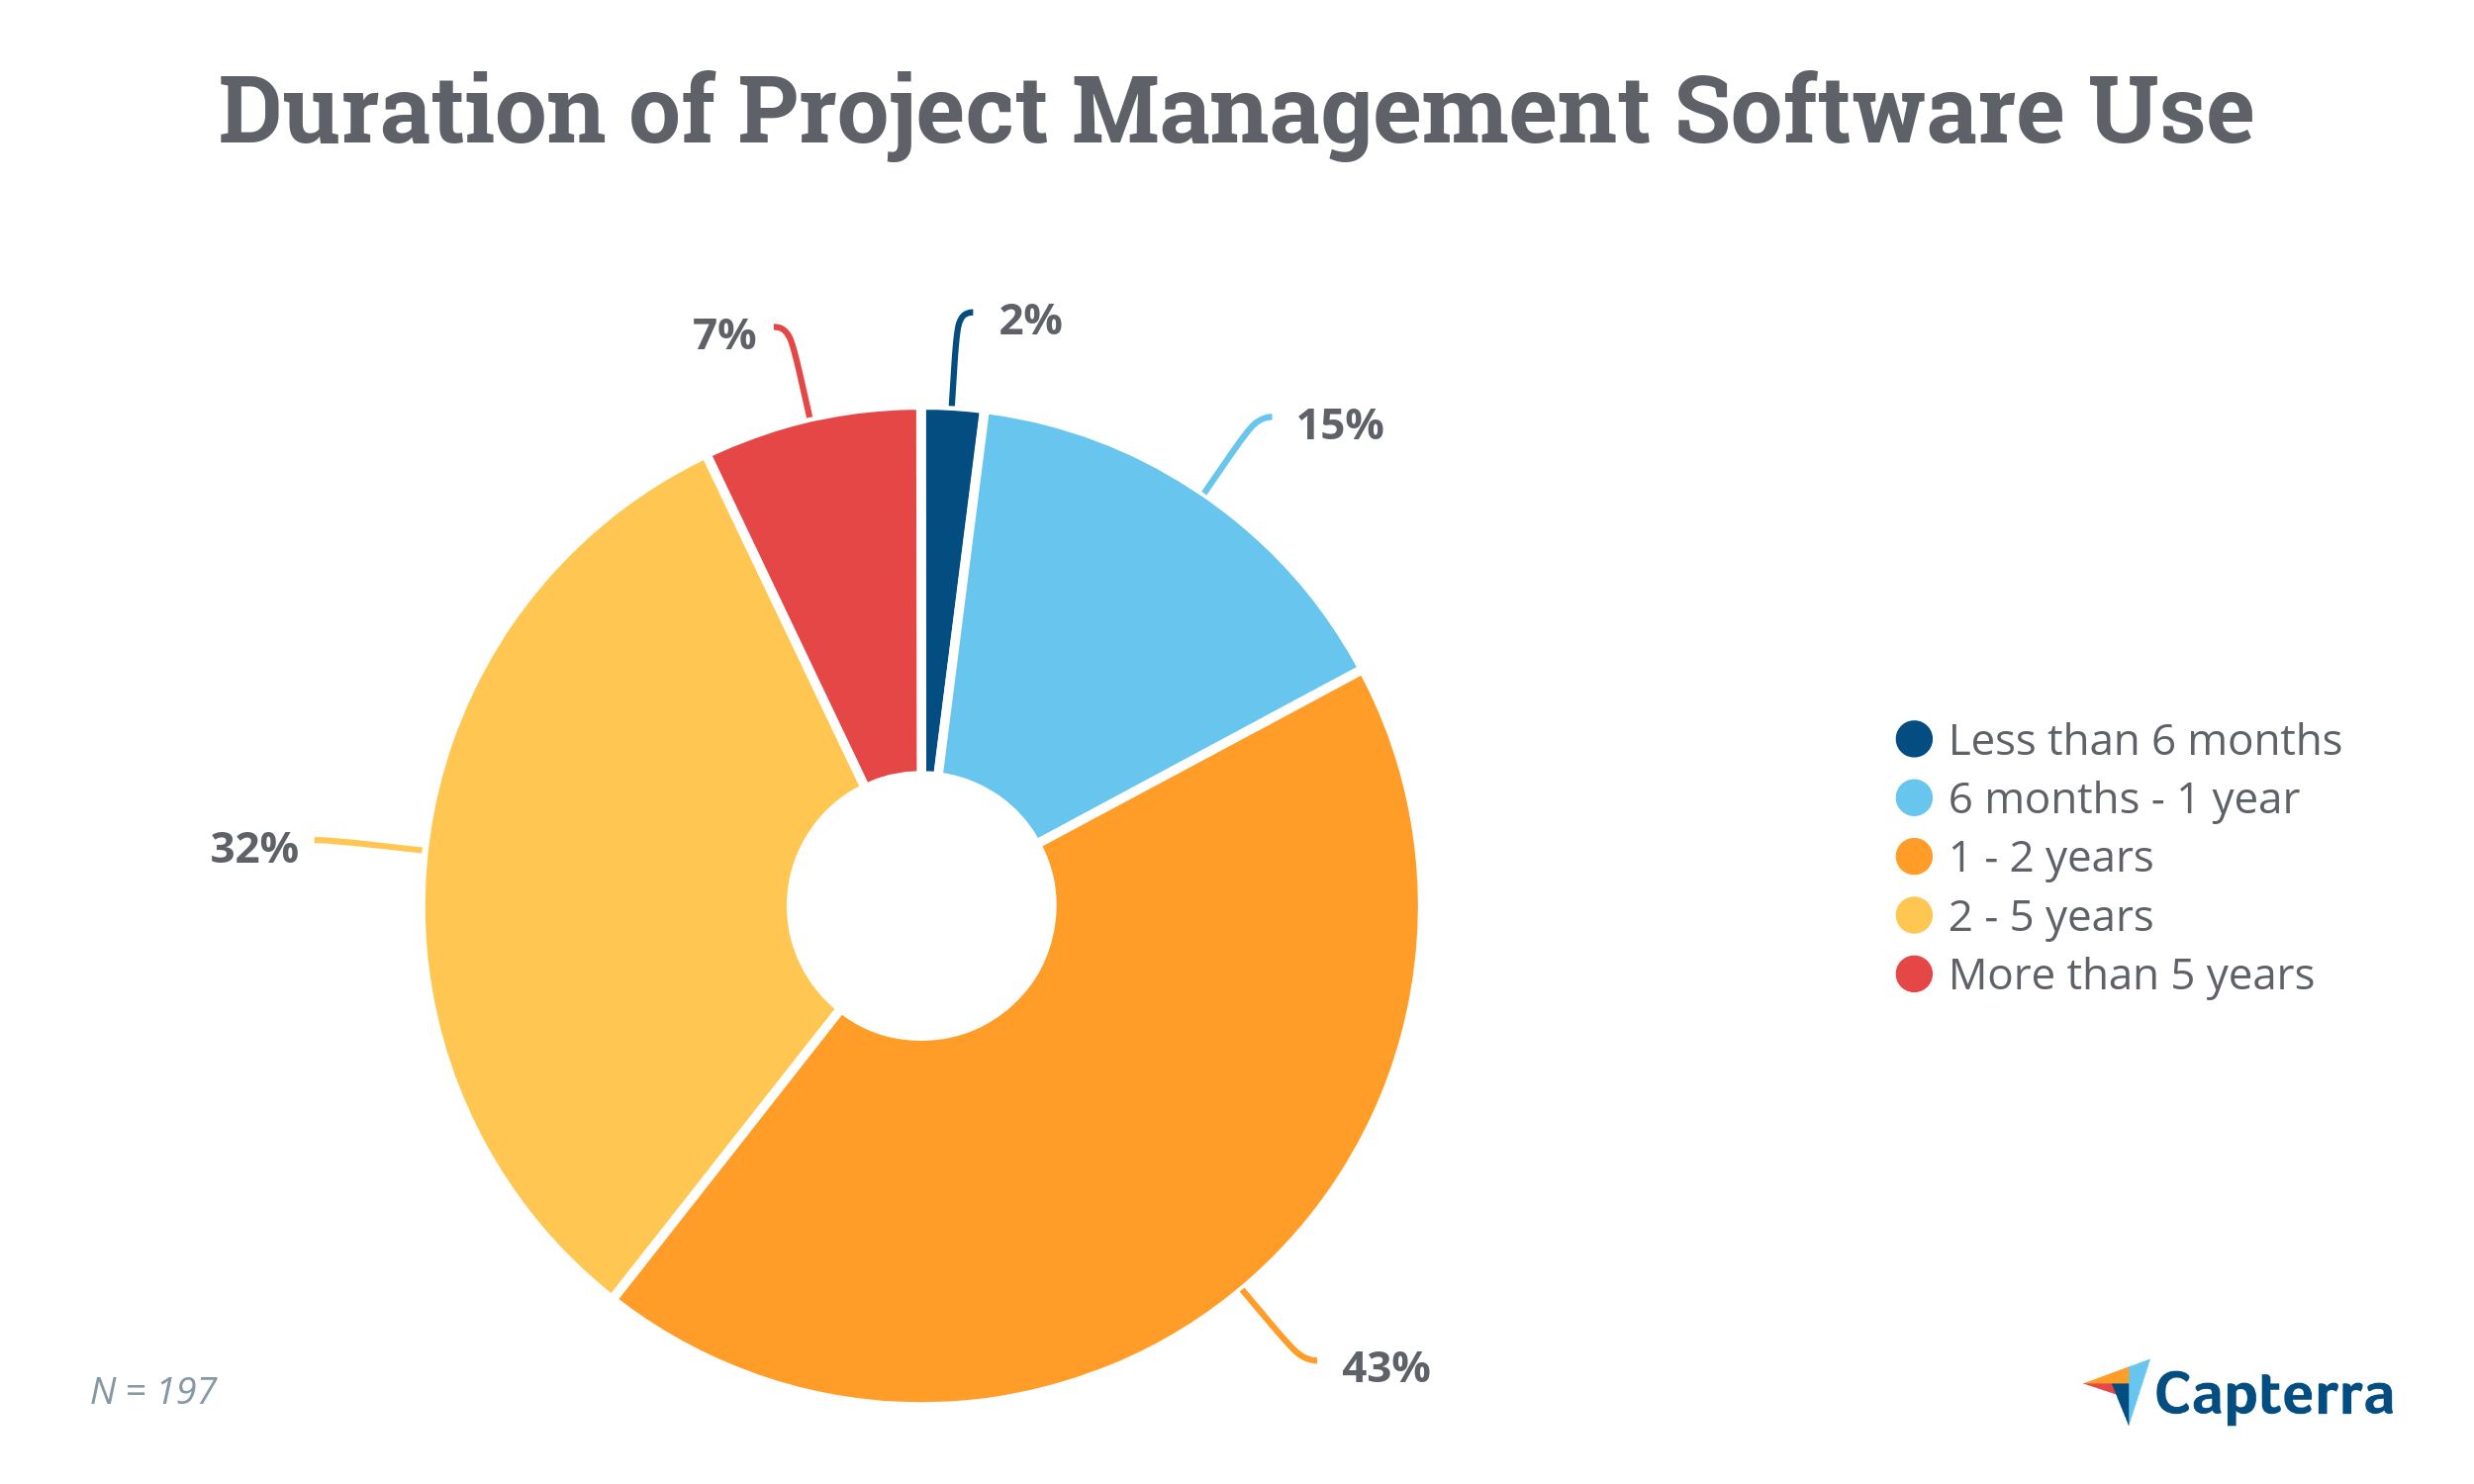 Duration of project management software use